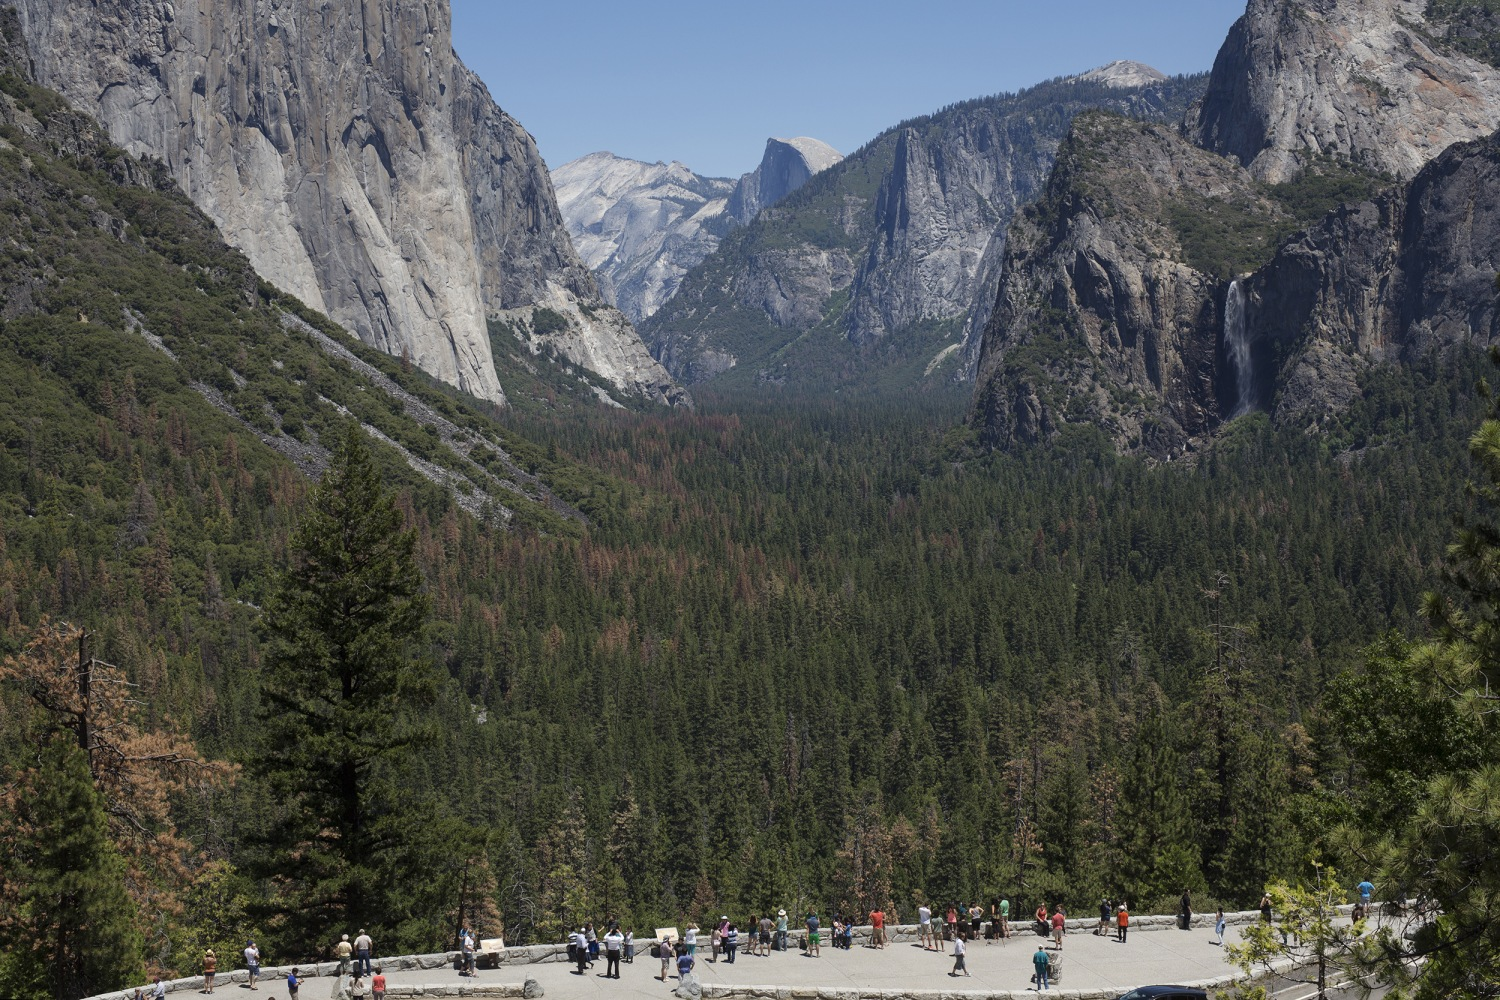 yosemite national park buddhist singles Exclusive: climber completes the most dangerous rope-free ascent ever alex honnold has become the first climber to free solo yosemite's 3,000-foot el capitan wall  yosemite national park, .